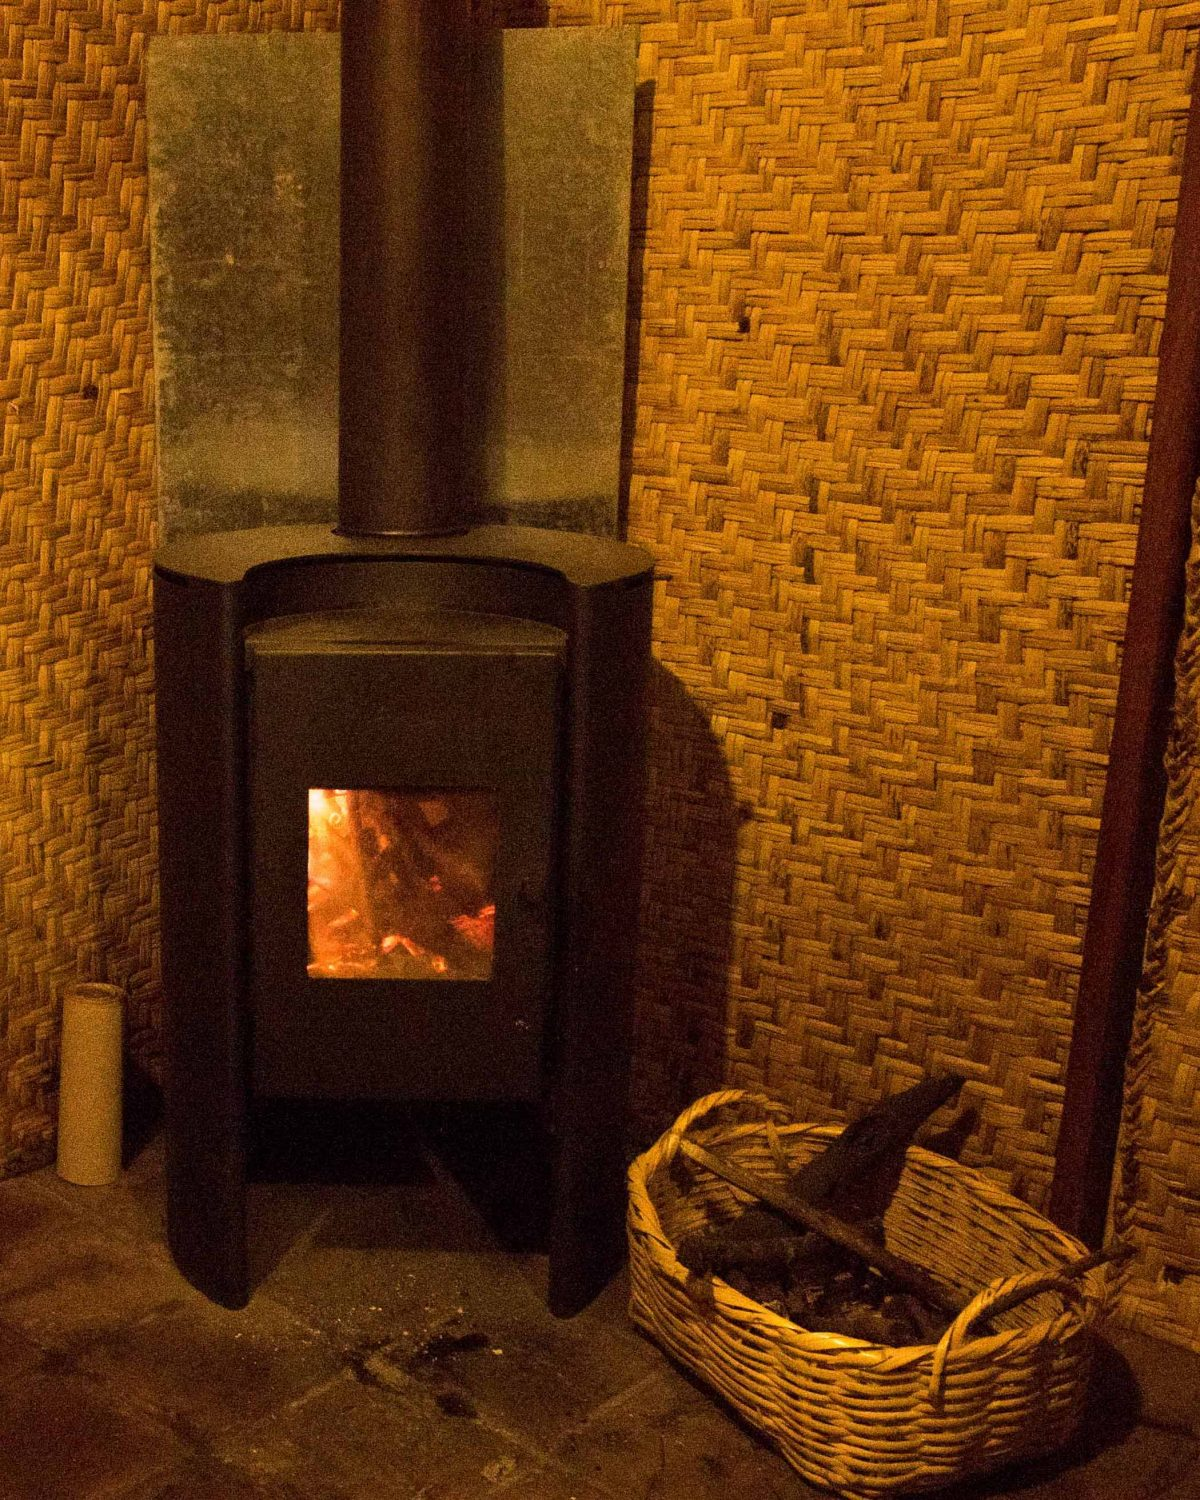 Fireplace in our suite, Guaytara Lodge, Ecuador   ©Angela Drake / Not Your Average American